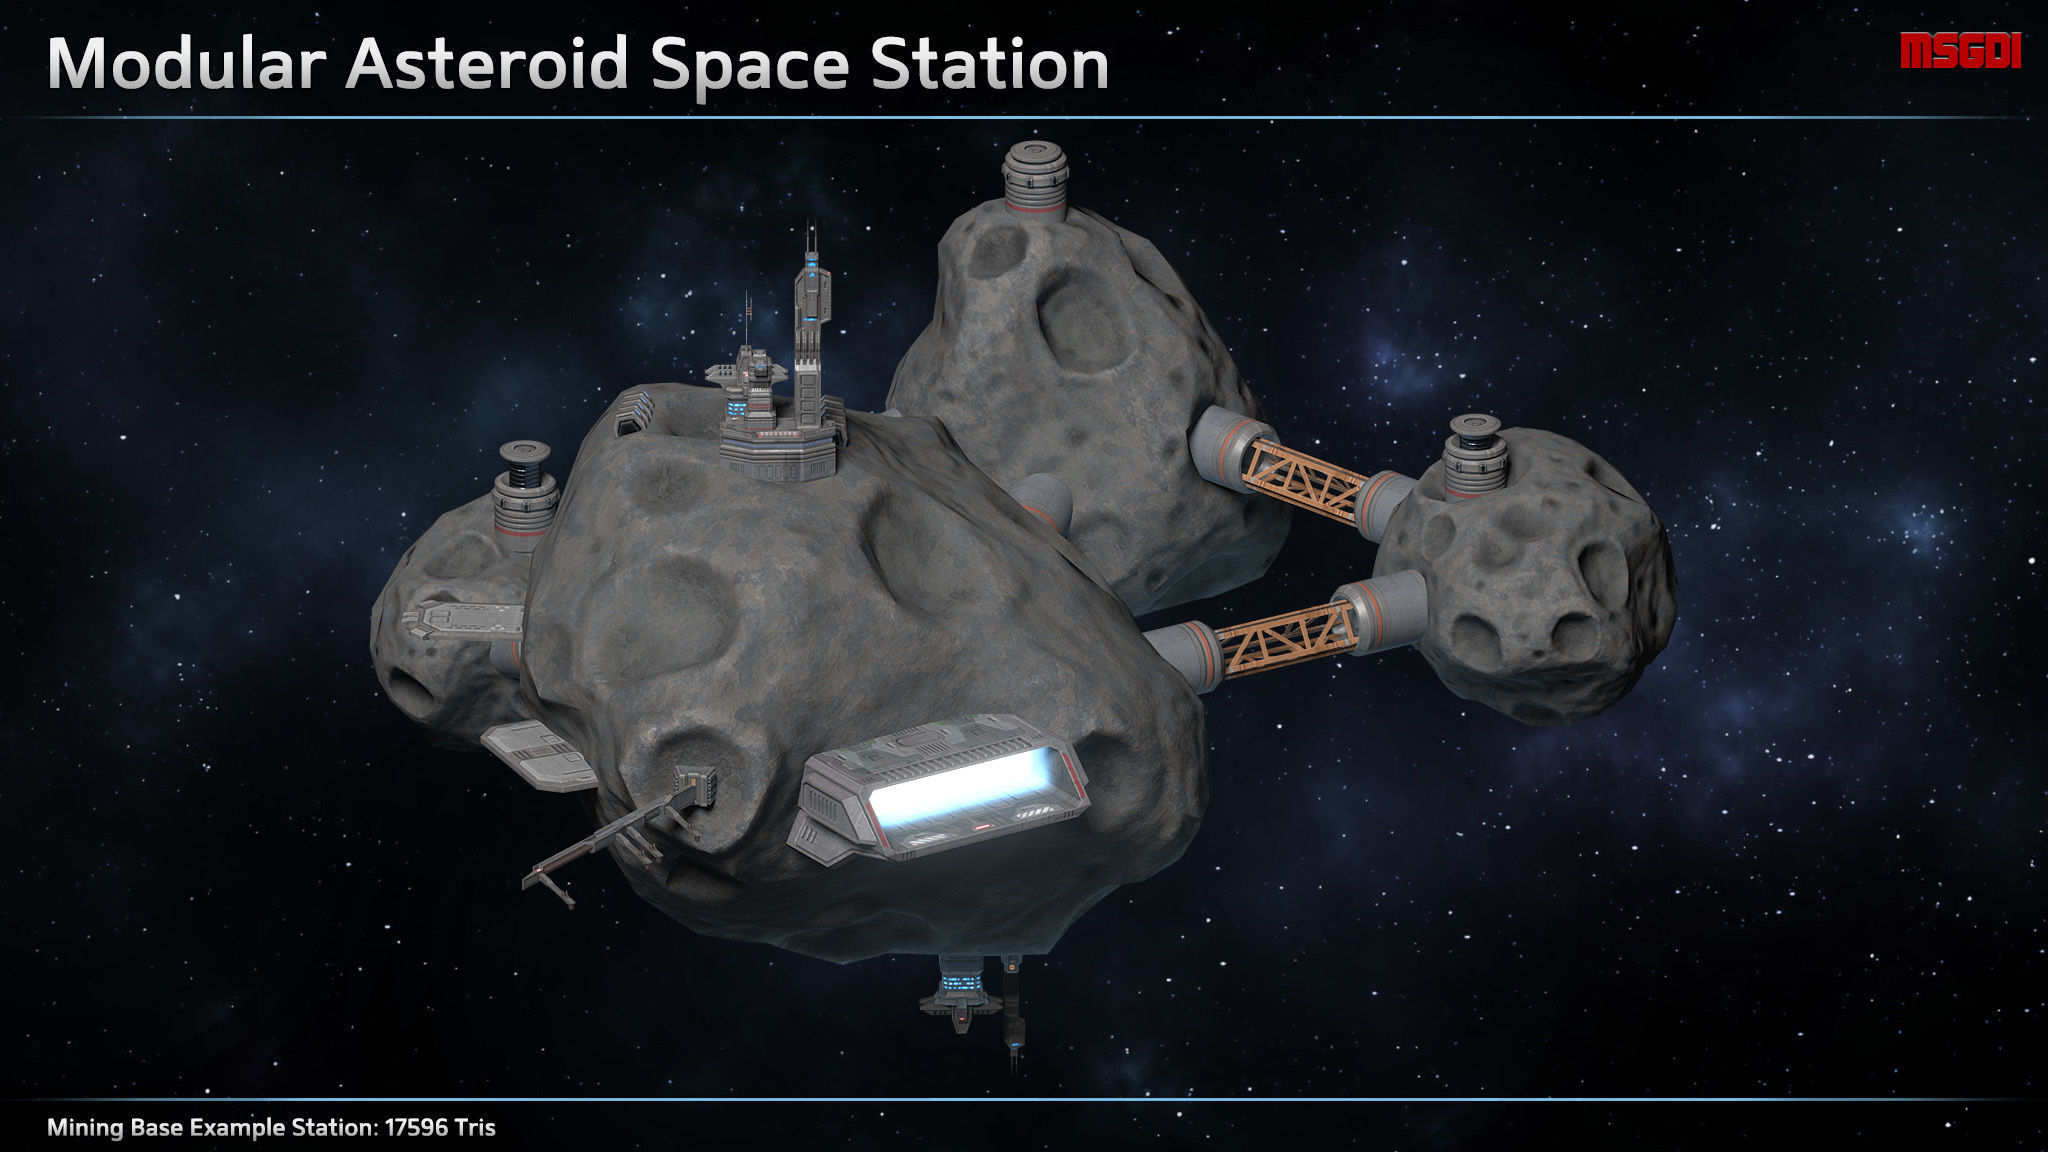 Scifi Modular Asteroid Space Station